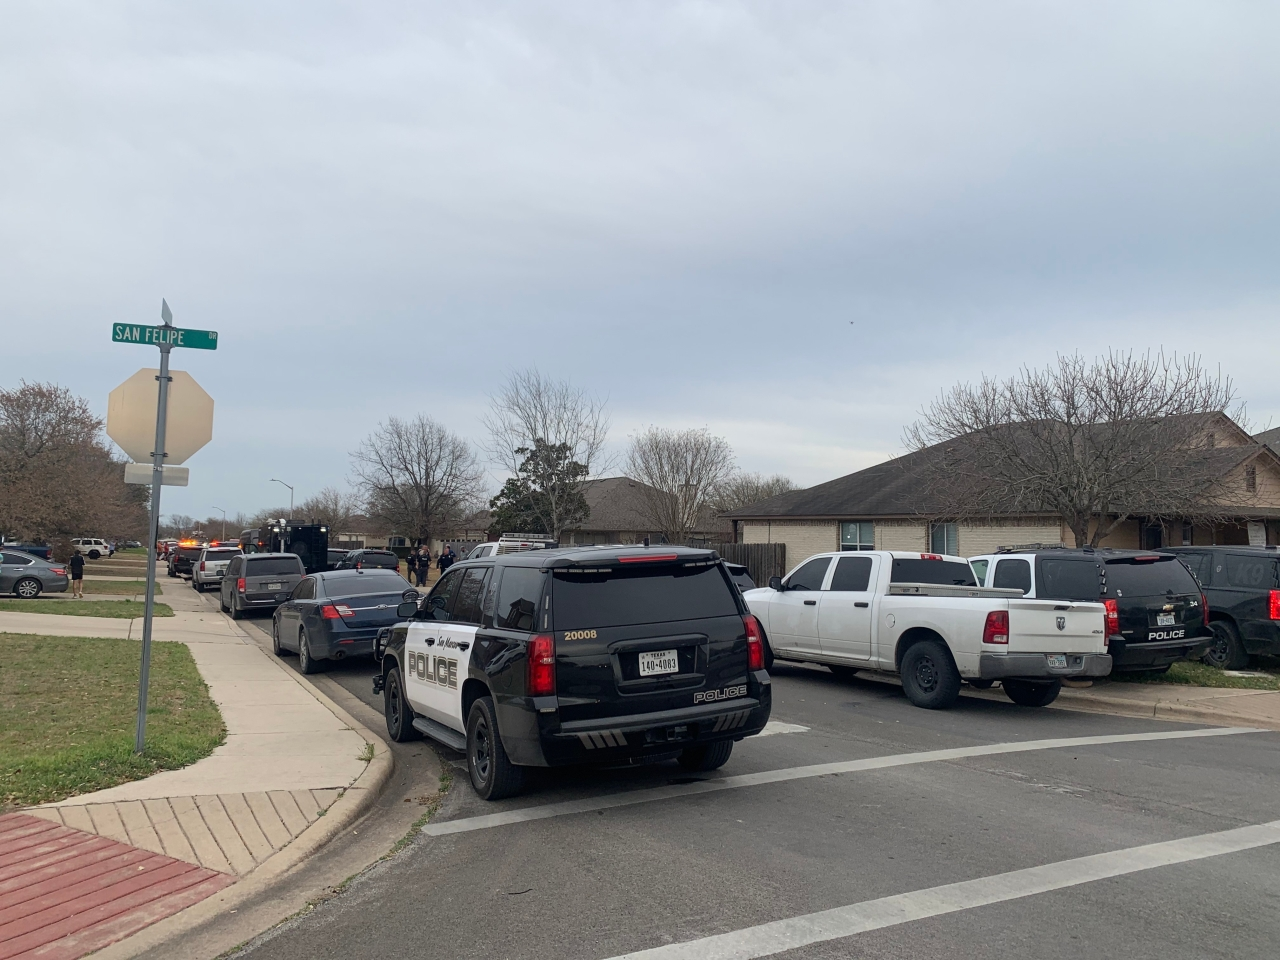 Kyle PD works to find caller who falsely reported active shooter to lure law enforcement to area